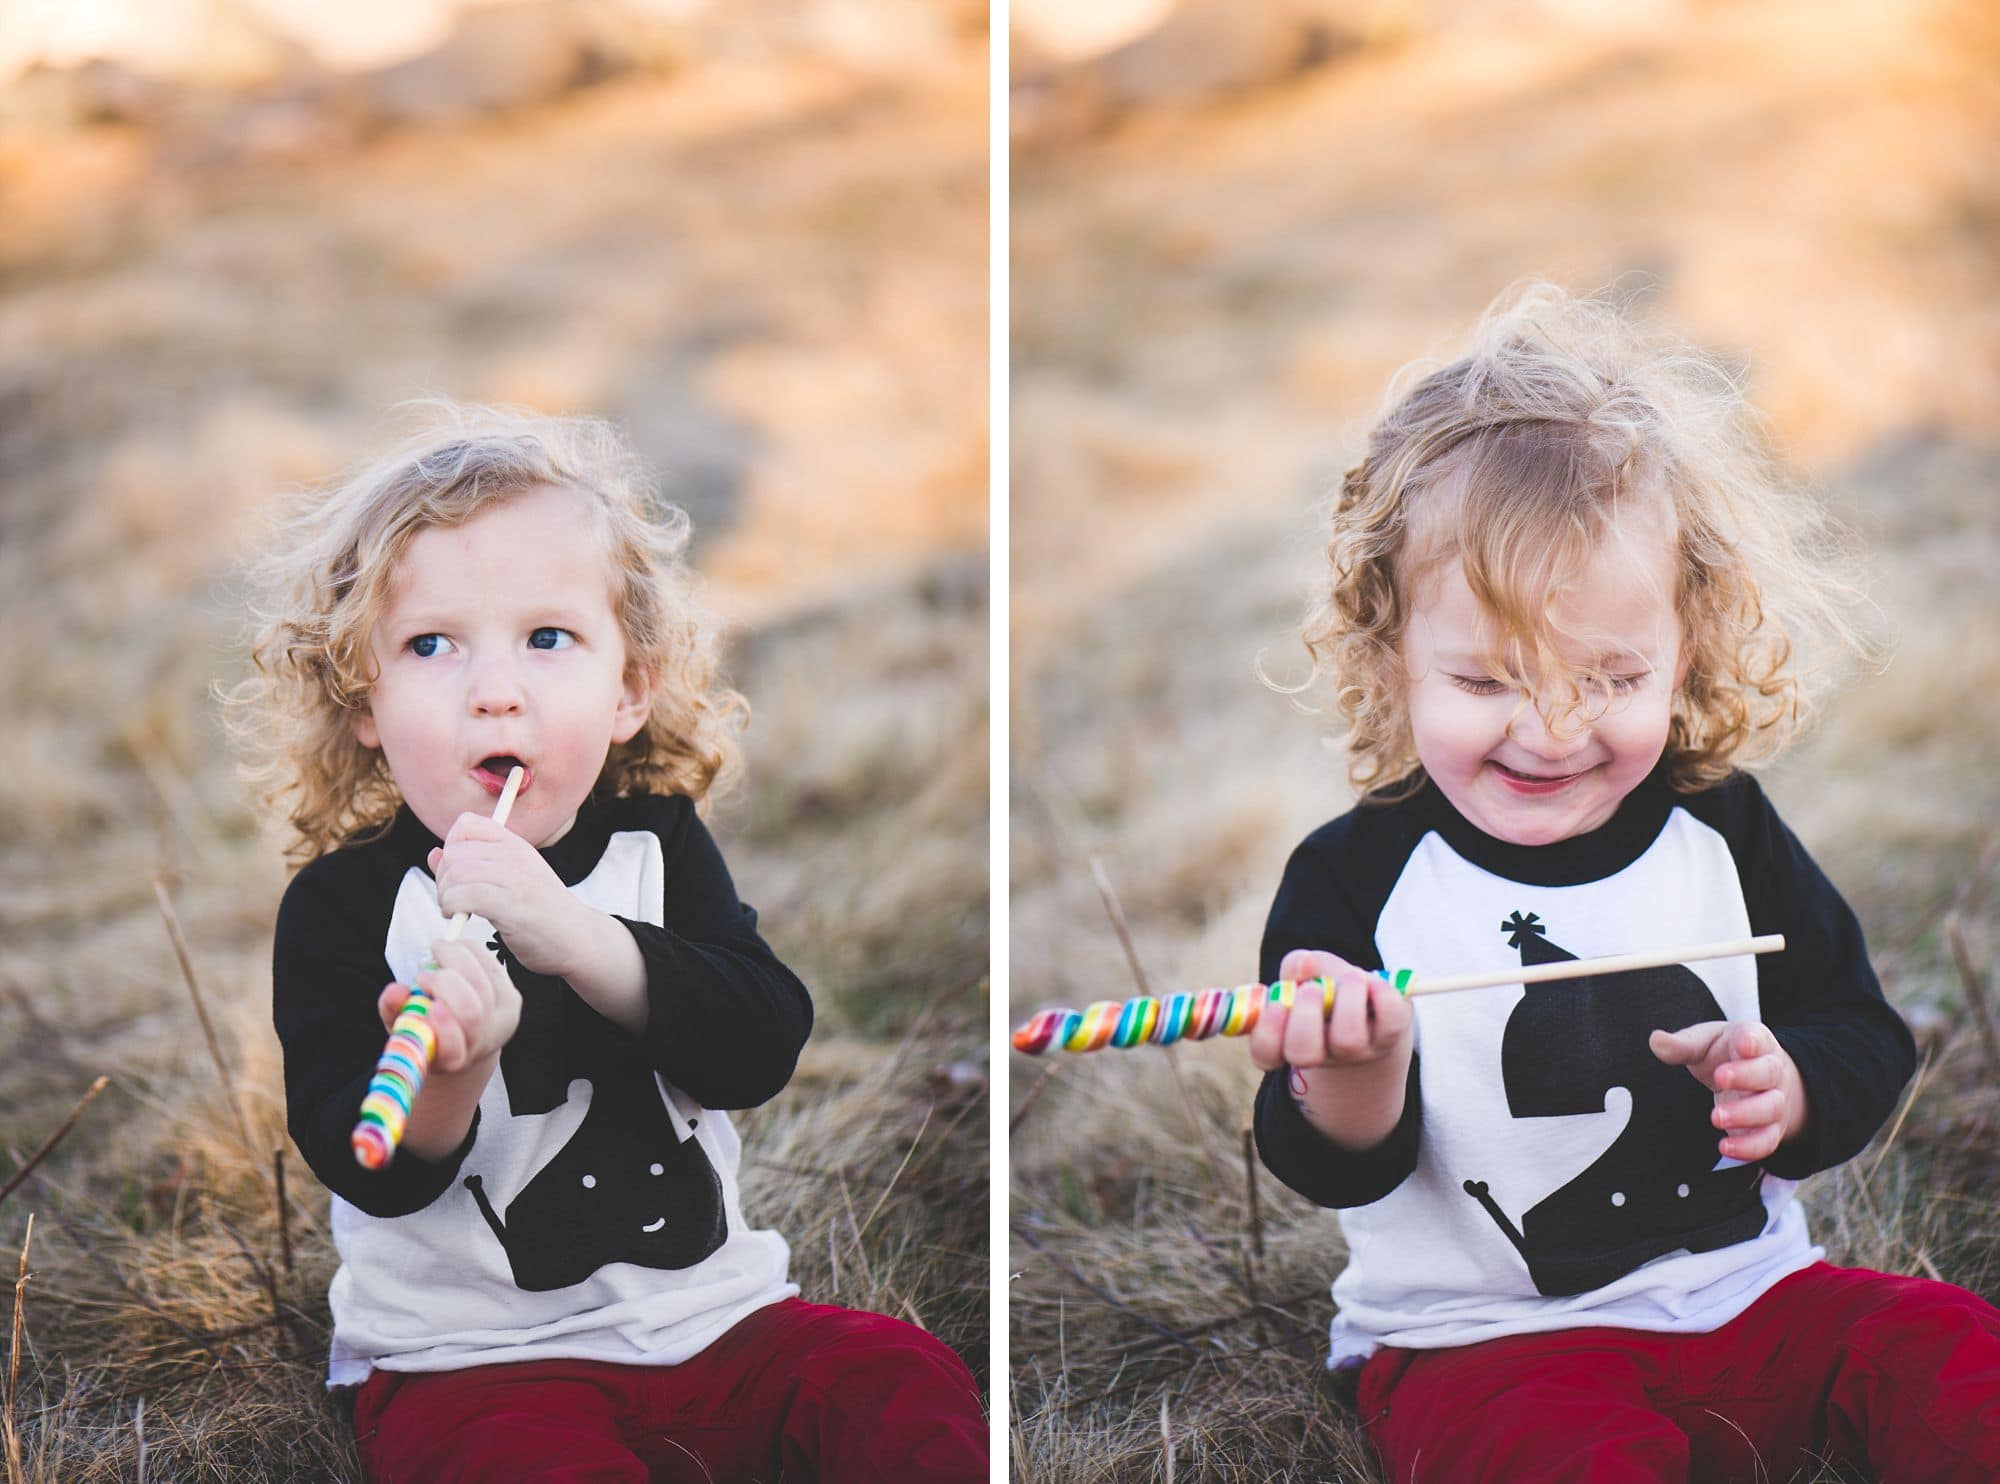 Silly toddler plays with a candy stick in a grassy field